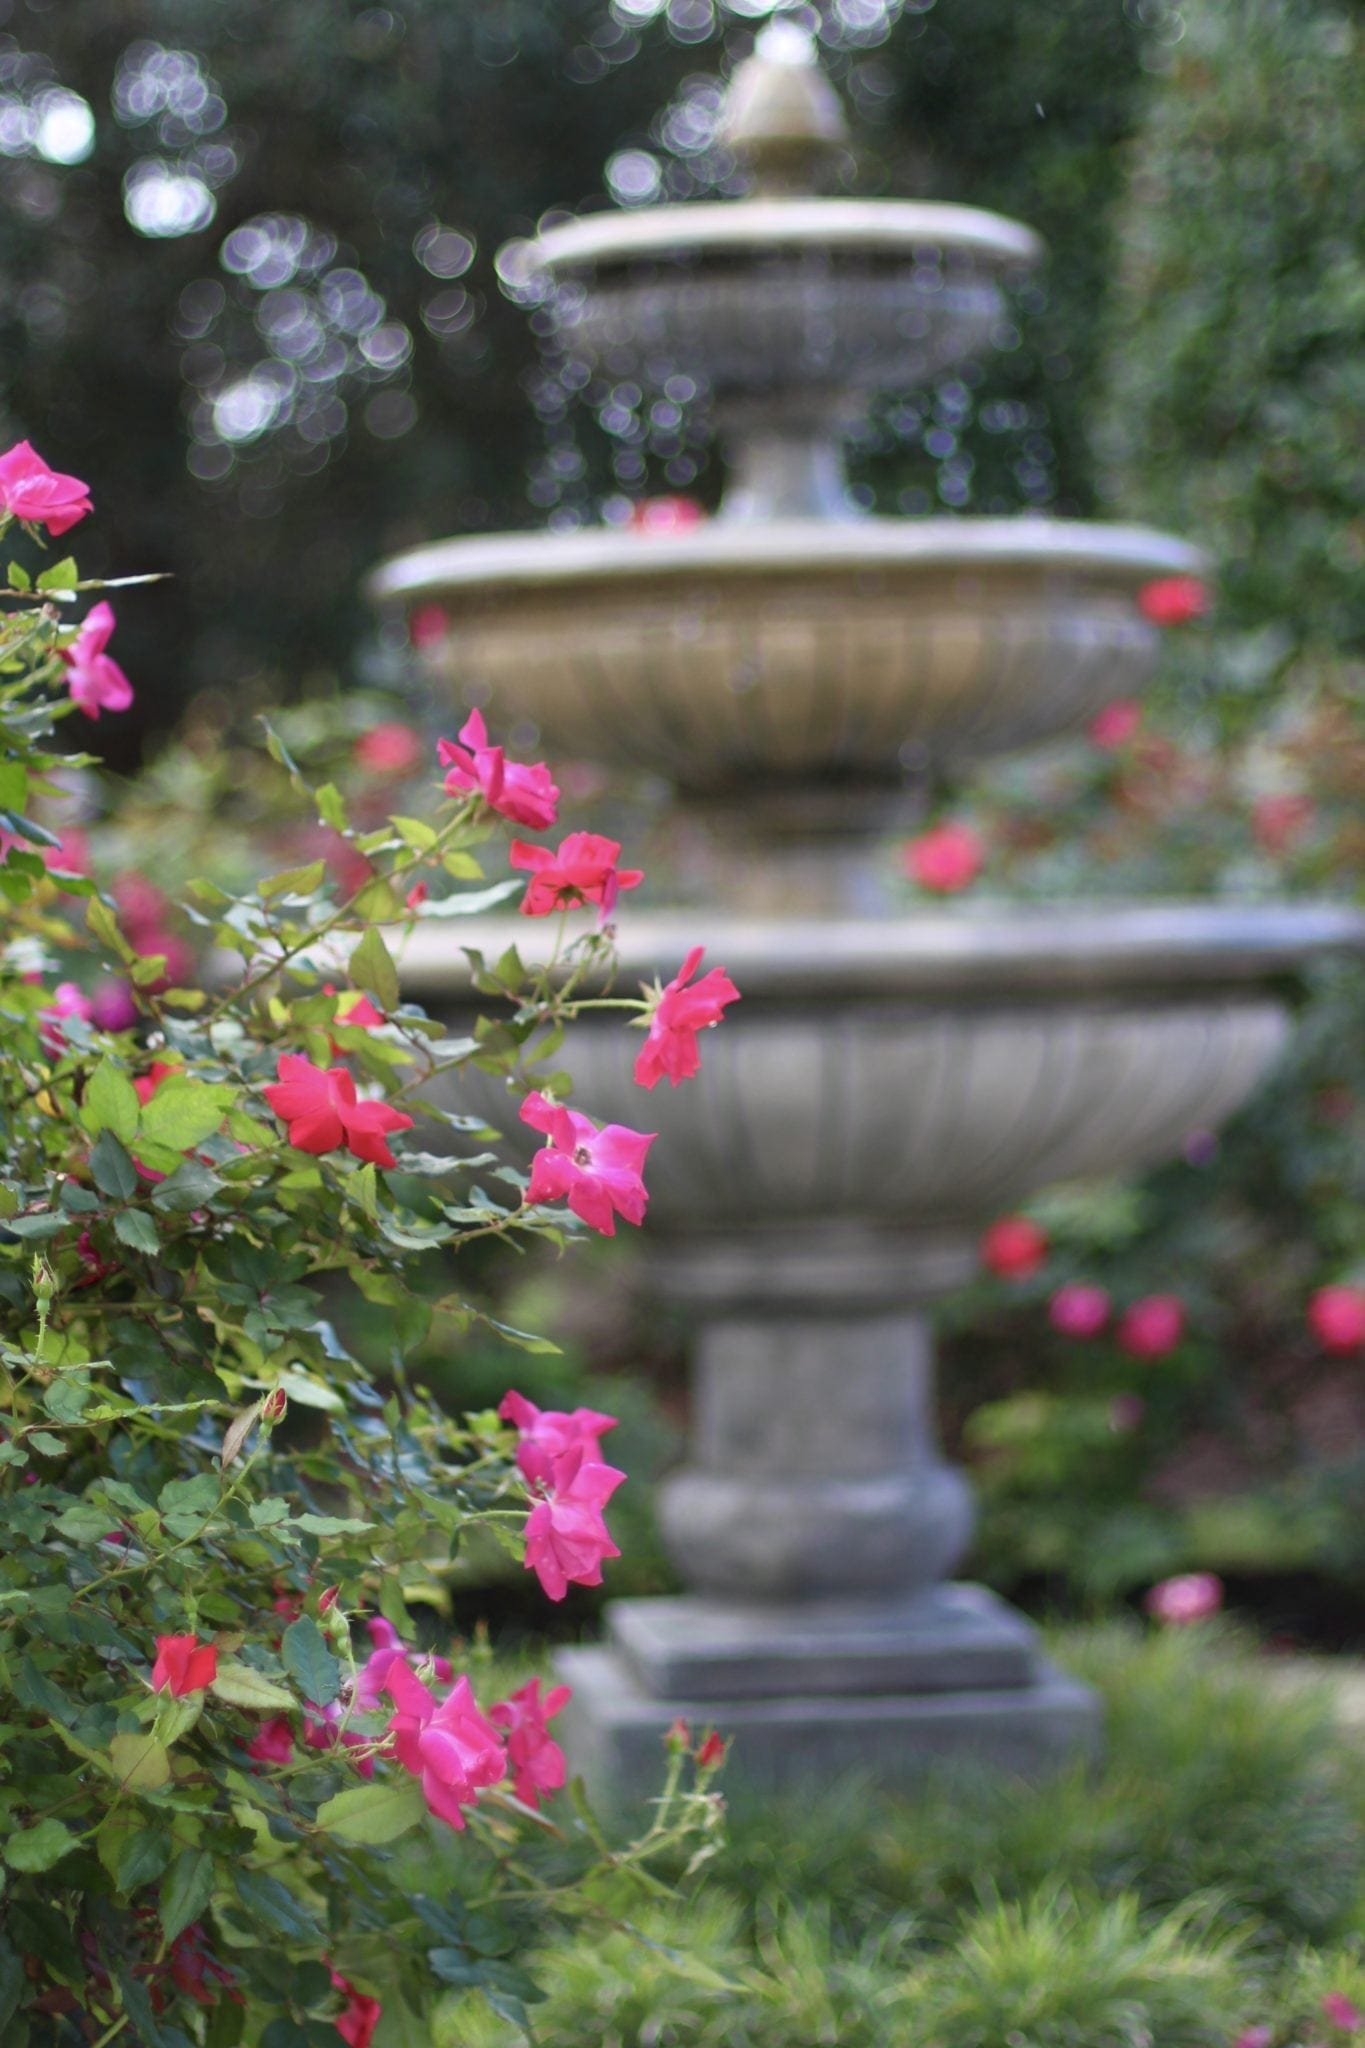 Growing knock out roses.